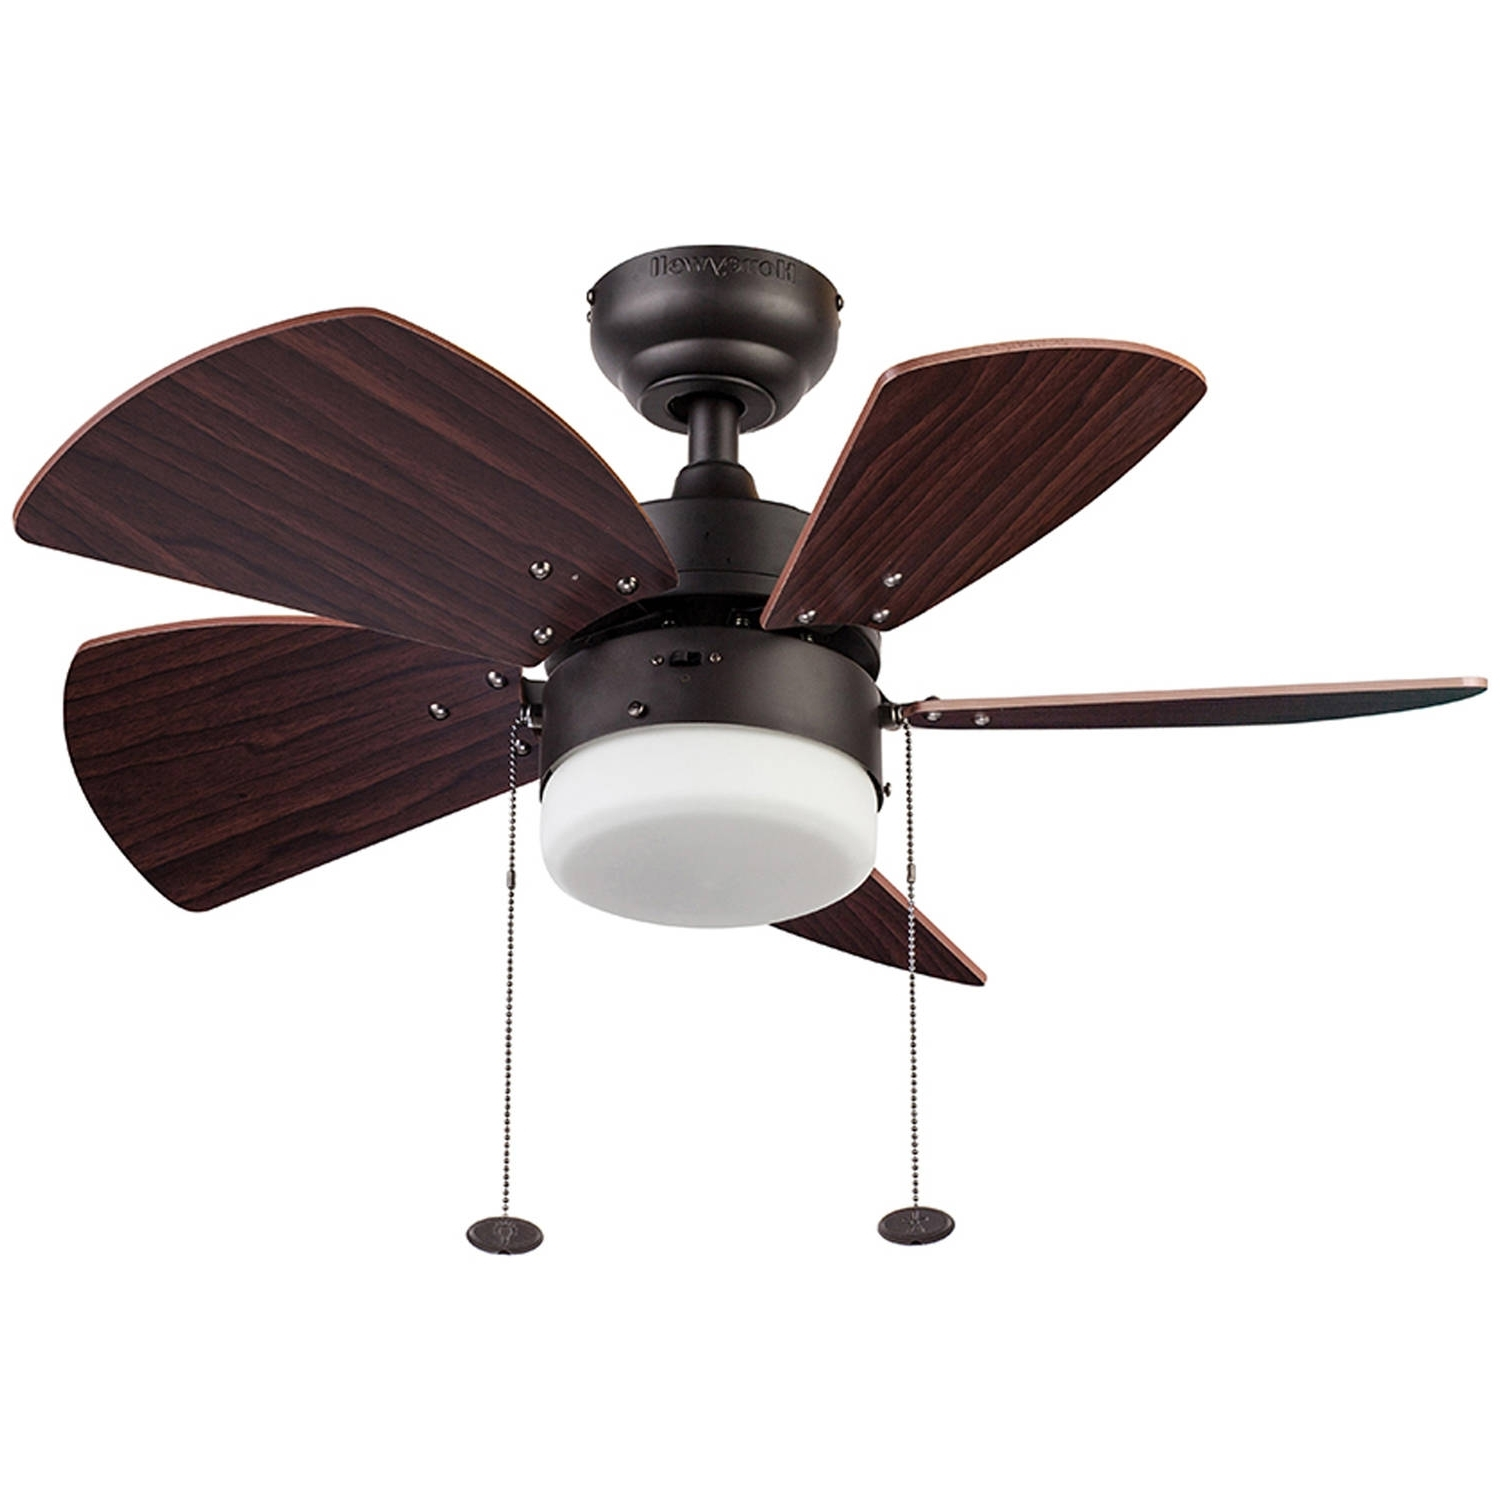 Outdoor Ceiling Fans At Walmart Pertaining To Recent 30Quot; Honeywell Lenox Ceiling Fan, Bronze Walmartcom, Ceiling Fans (Gallery 5 of 20)